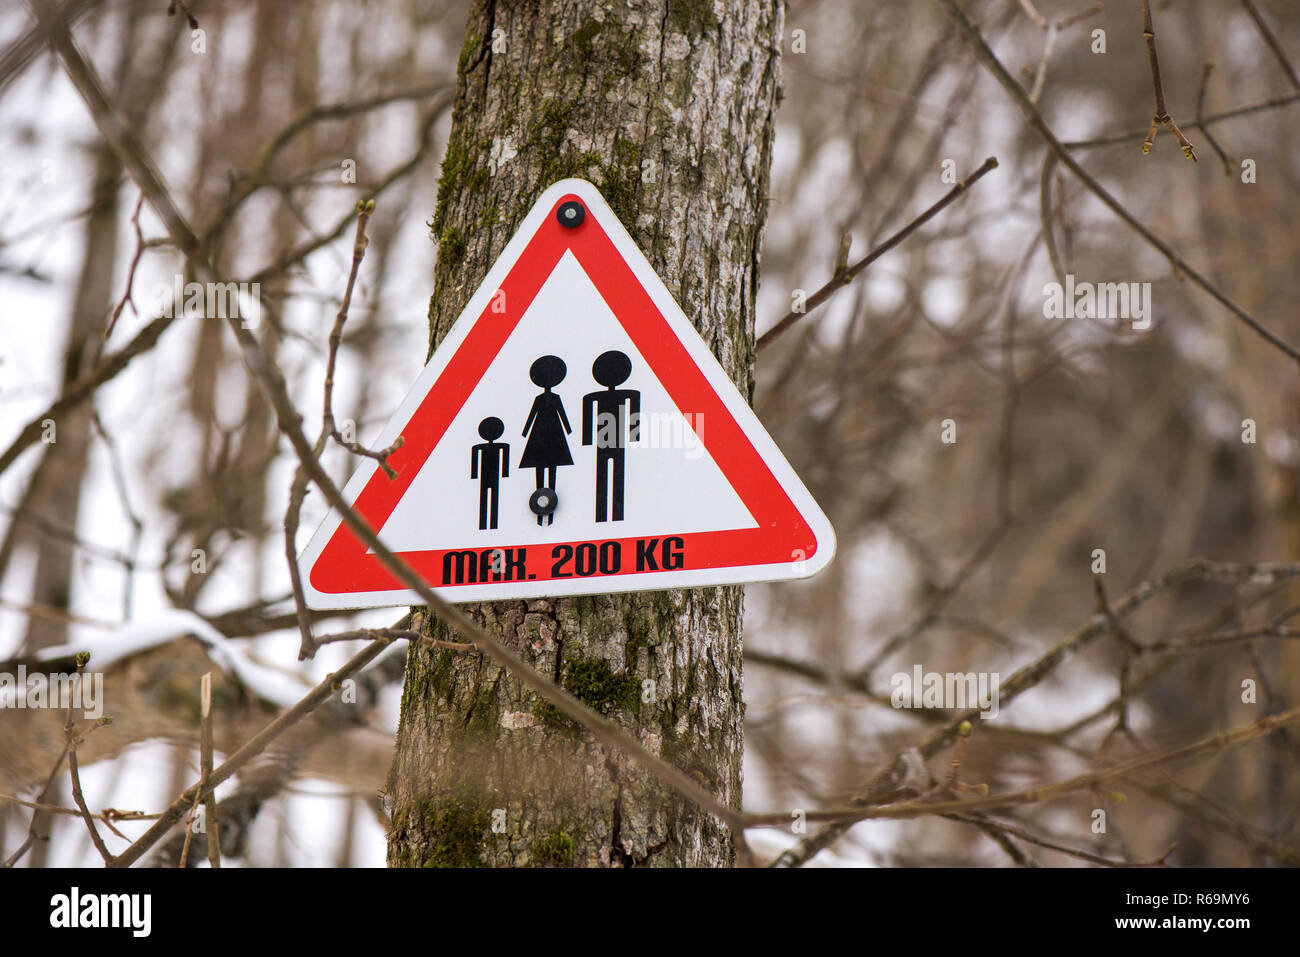 Warning sign of maximum weight 200 kg allowed on wooden bridge at hiking trails in mountain valley in winter. Shape of triangle. - Stock Image